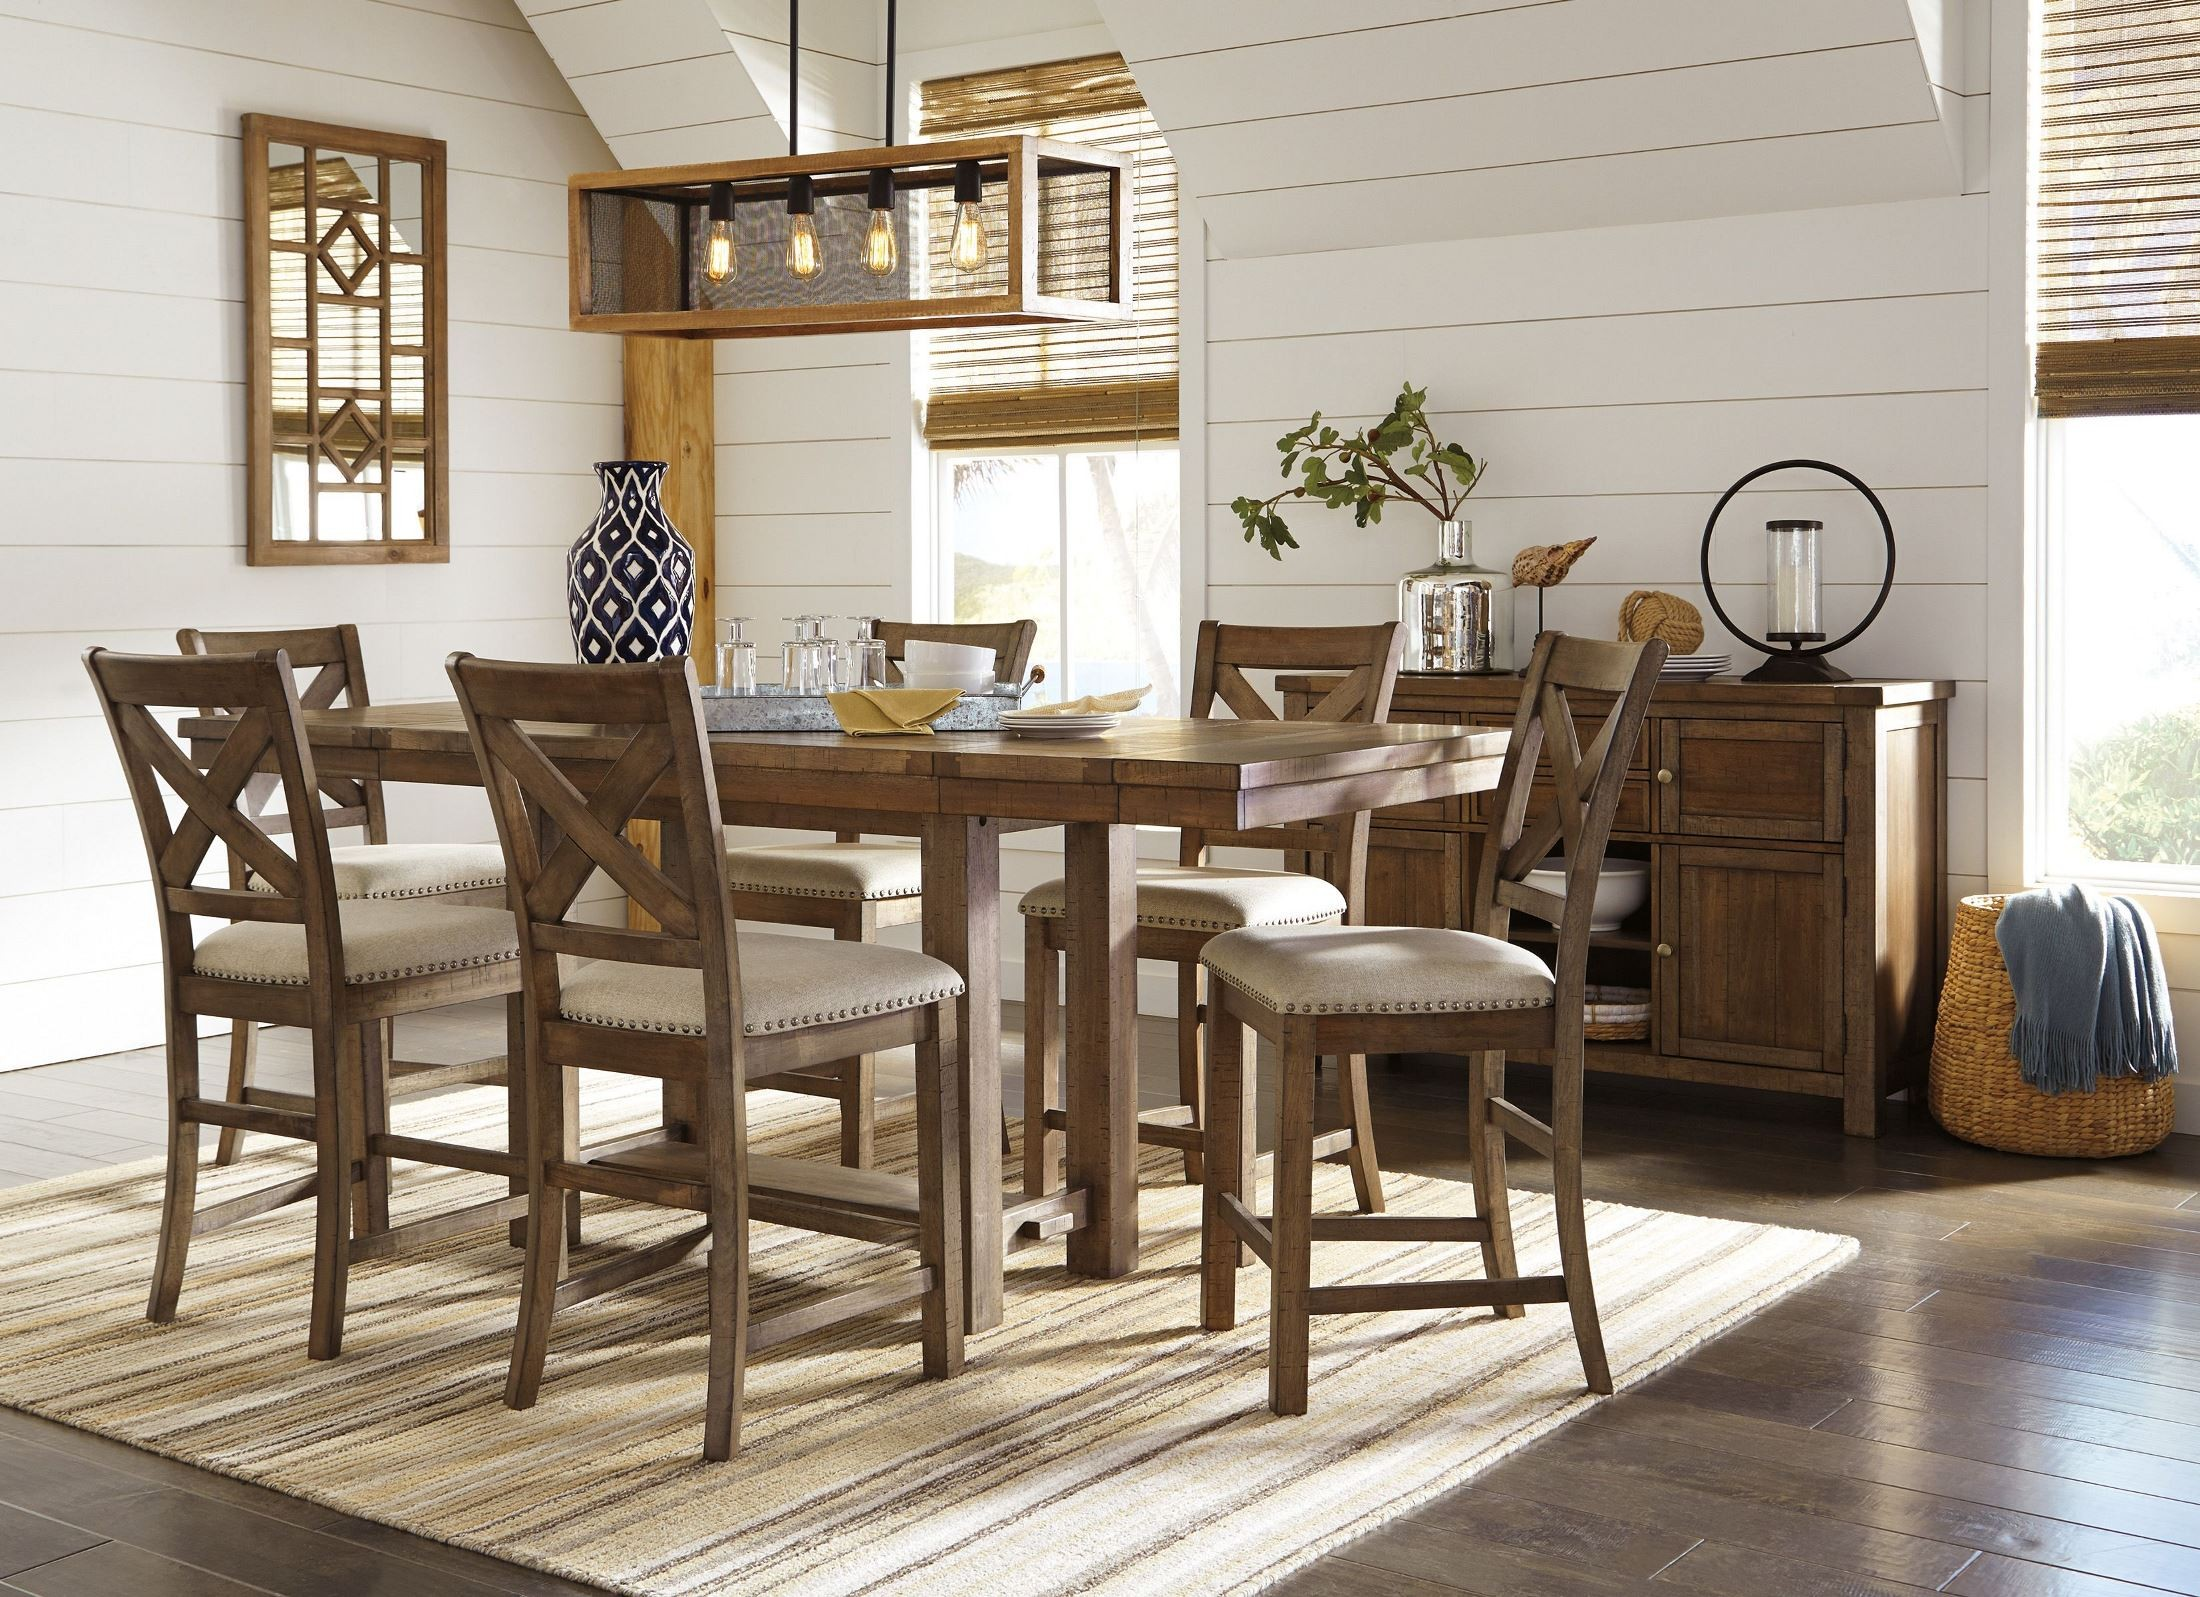 Moriville Gray Extendable Counter Height Dining Table From Ashley Coleman Furniture